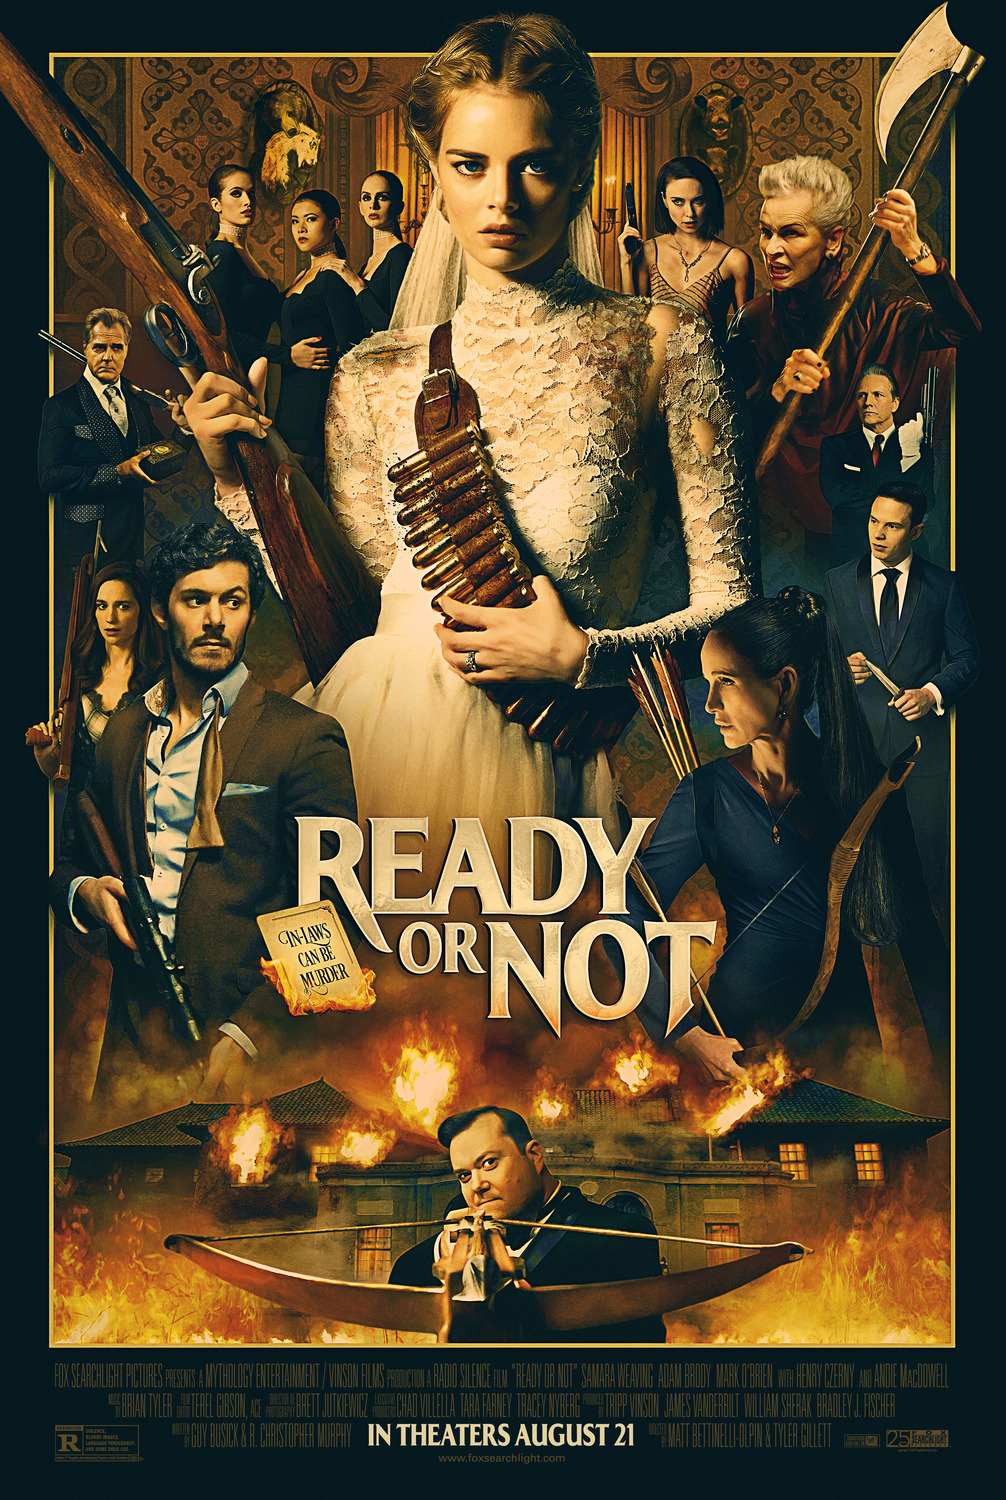 Ready Or Not film review: one of the best genre crowd-pleasers of the year